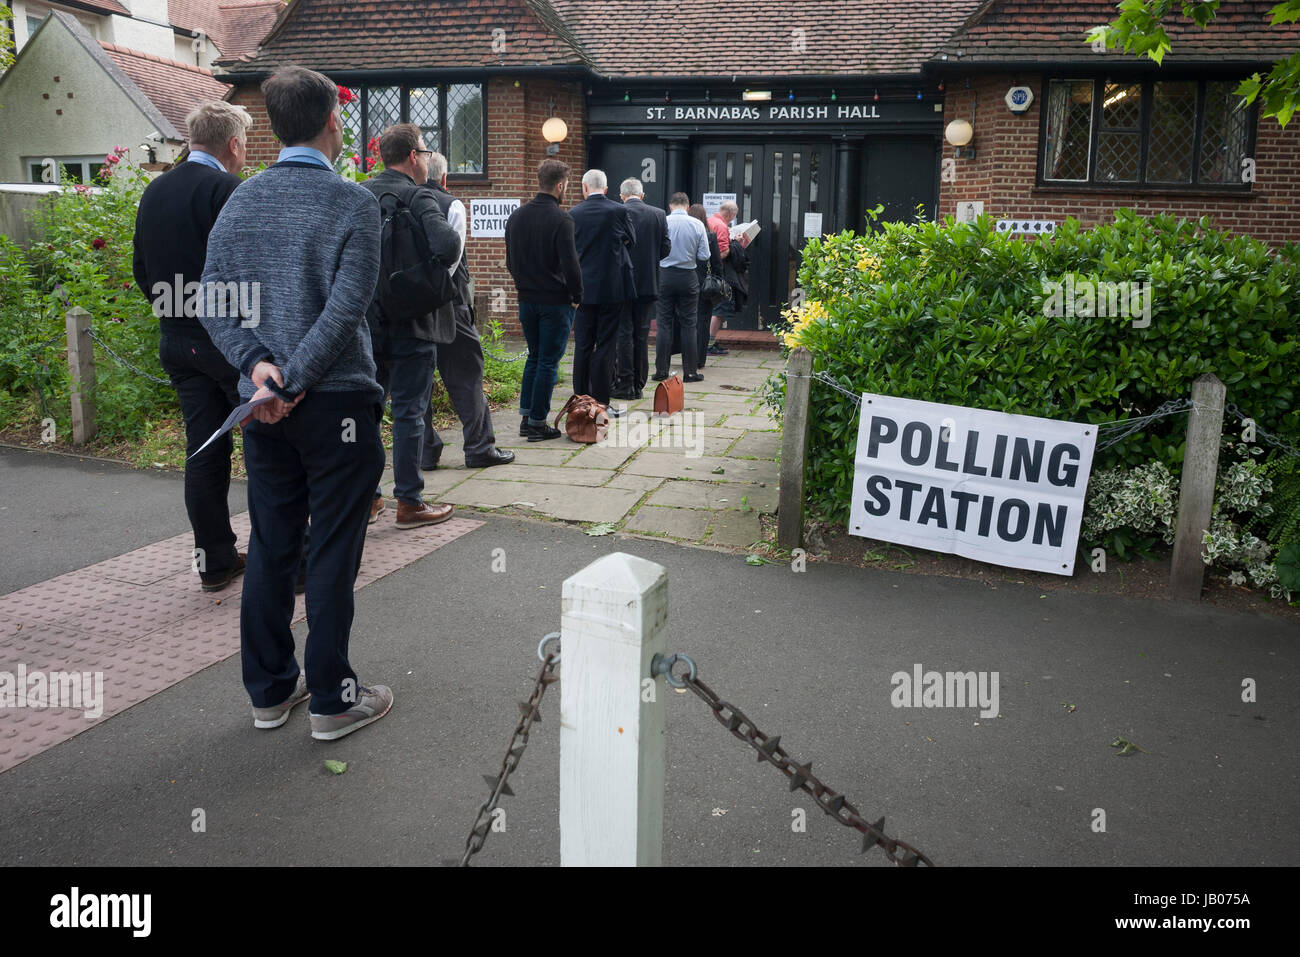 Early voters for the UK 2017 general elections queue outside the polling station at St. Barnabas Parish Hall in - Stock Image